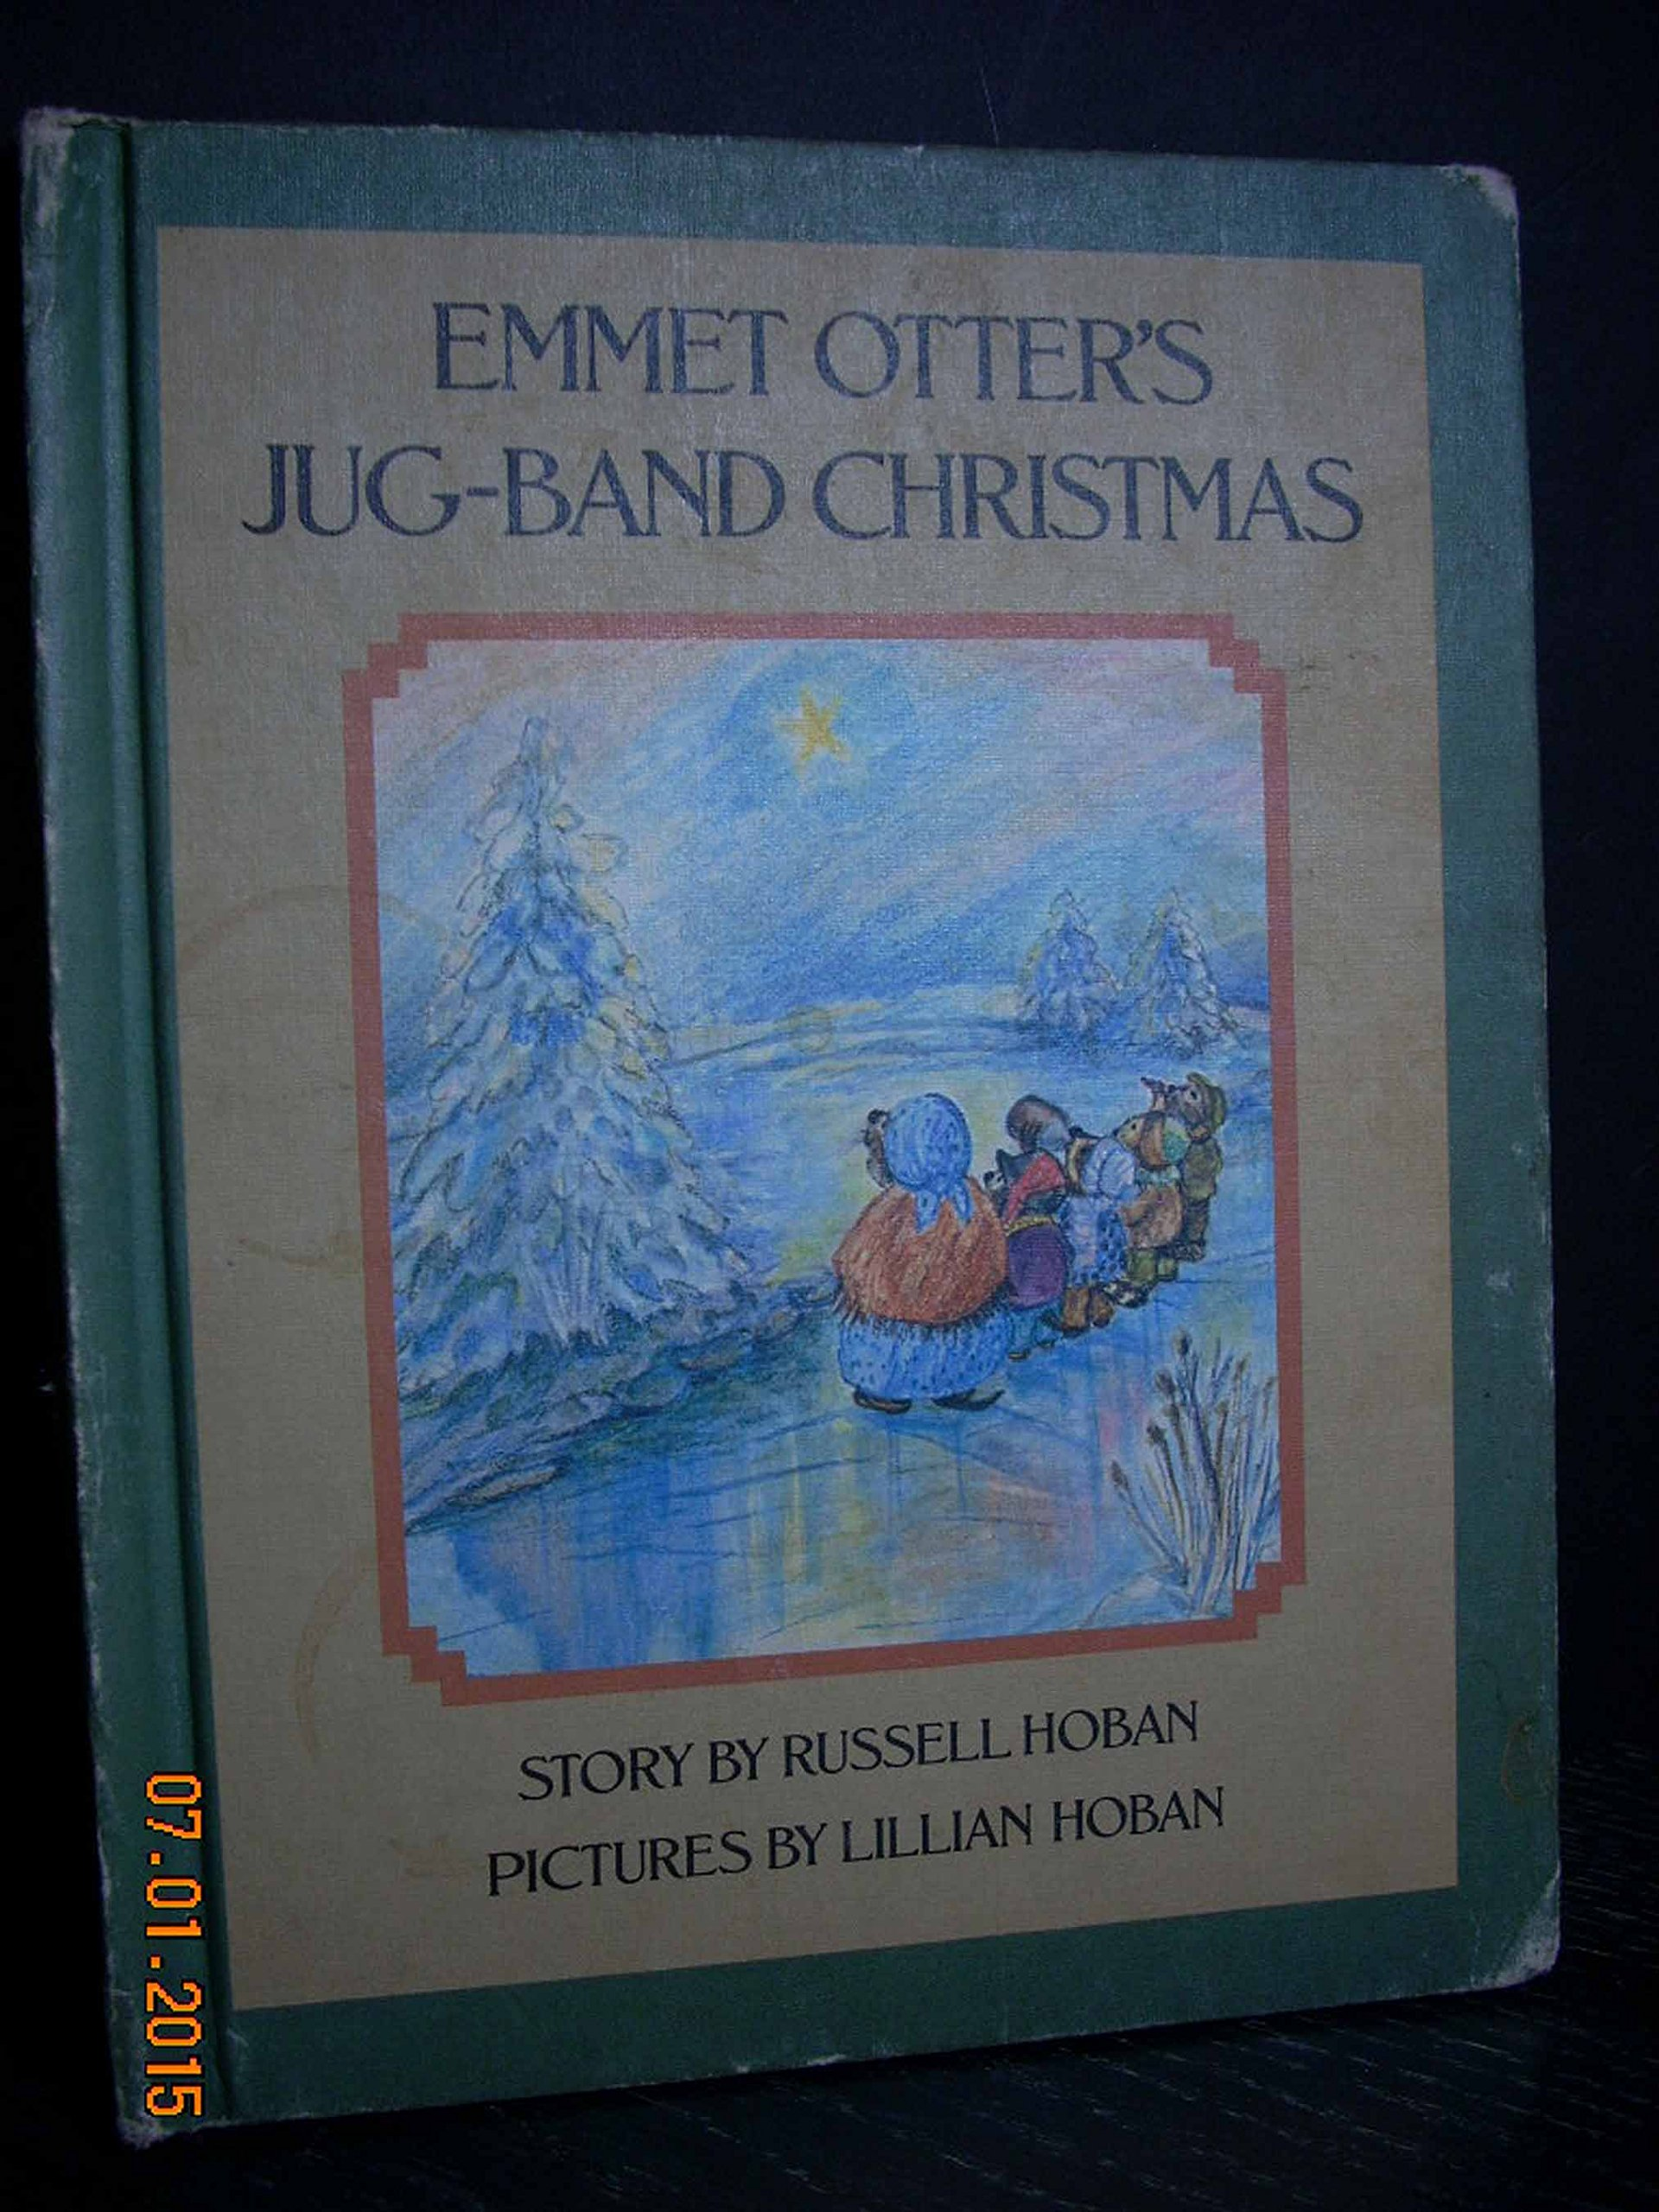 Emmet Otters Jug Band Christmas Book.Emmet Otter S Jug Band Christmas Russell Hoban Lillian